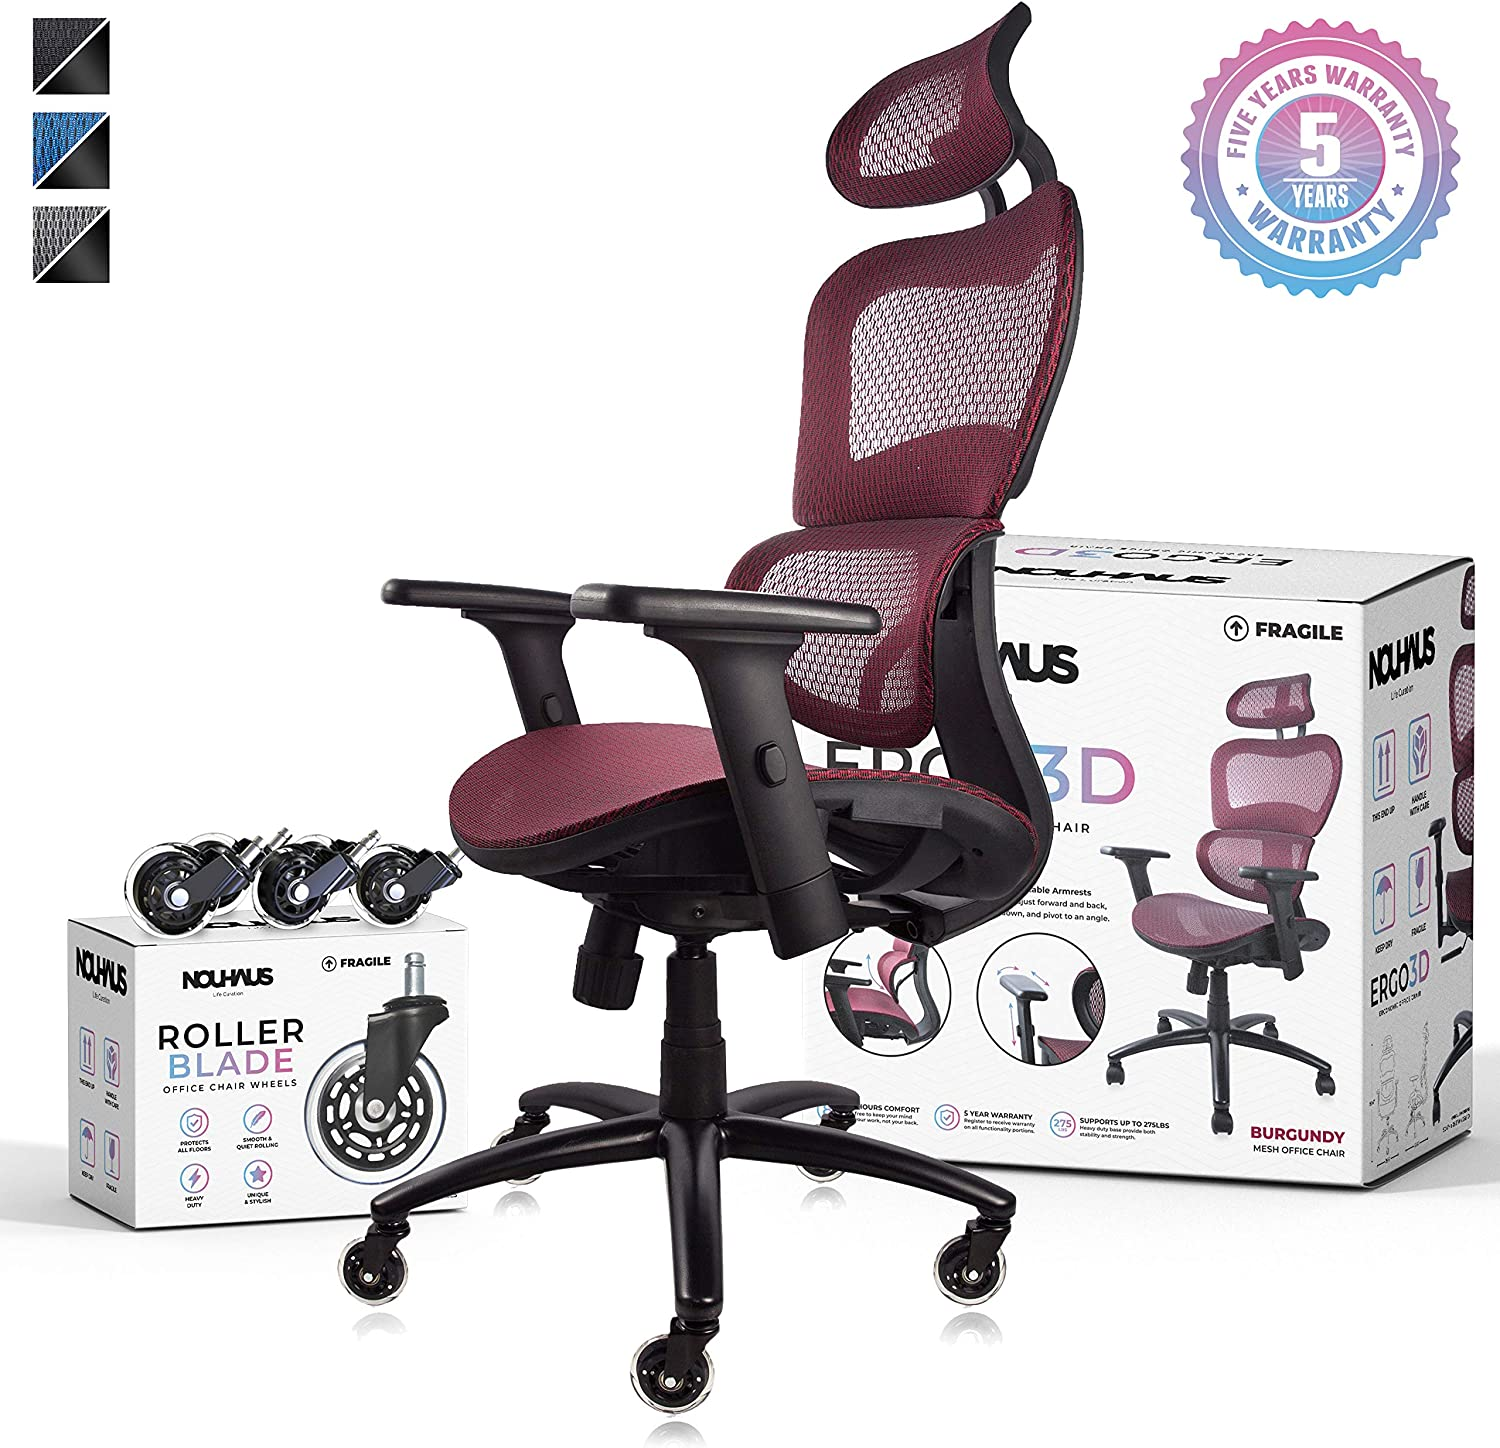 NOUHAUS Ergo3D Ergonomic Office Chair - Rolling Desk Chair with 4D Adjustable Armrest, 3D Lumbar Support and Extra Blade Wheels, Mesh Computer Chair, Gaming Chairs, Executive Swivel Chair (Burgundy)